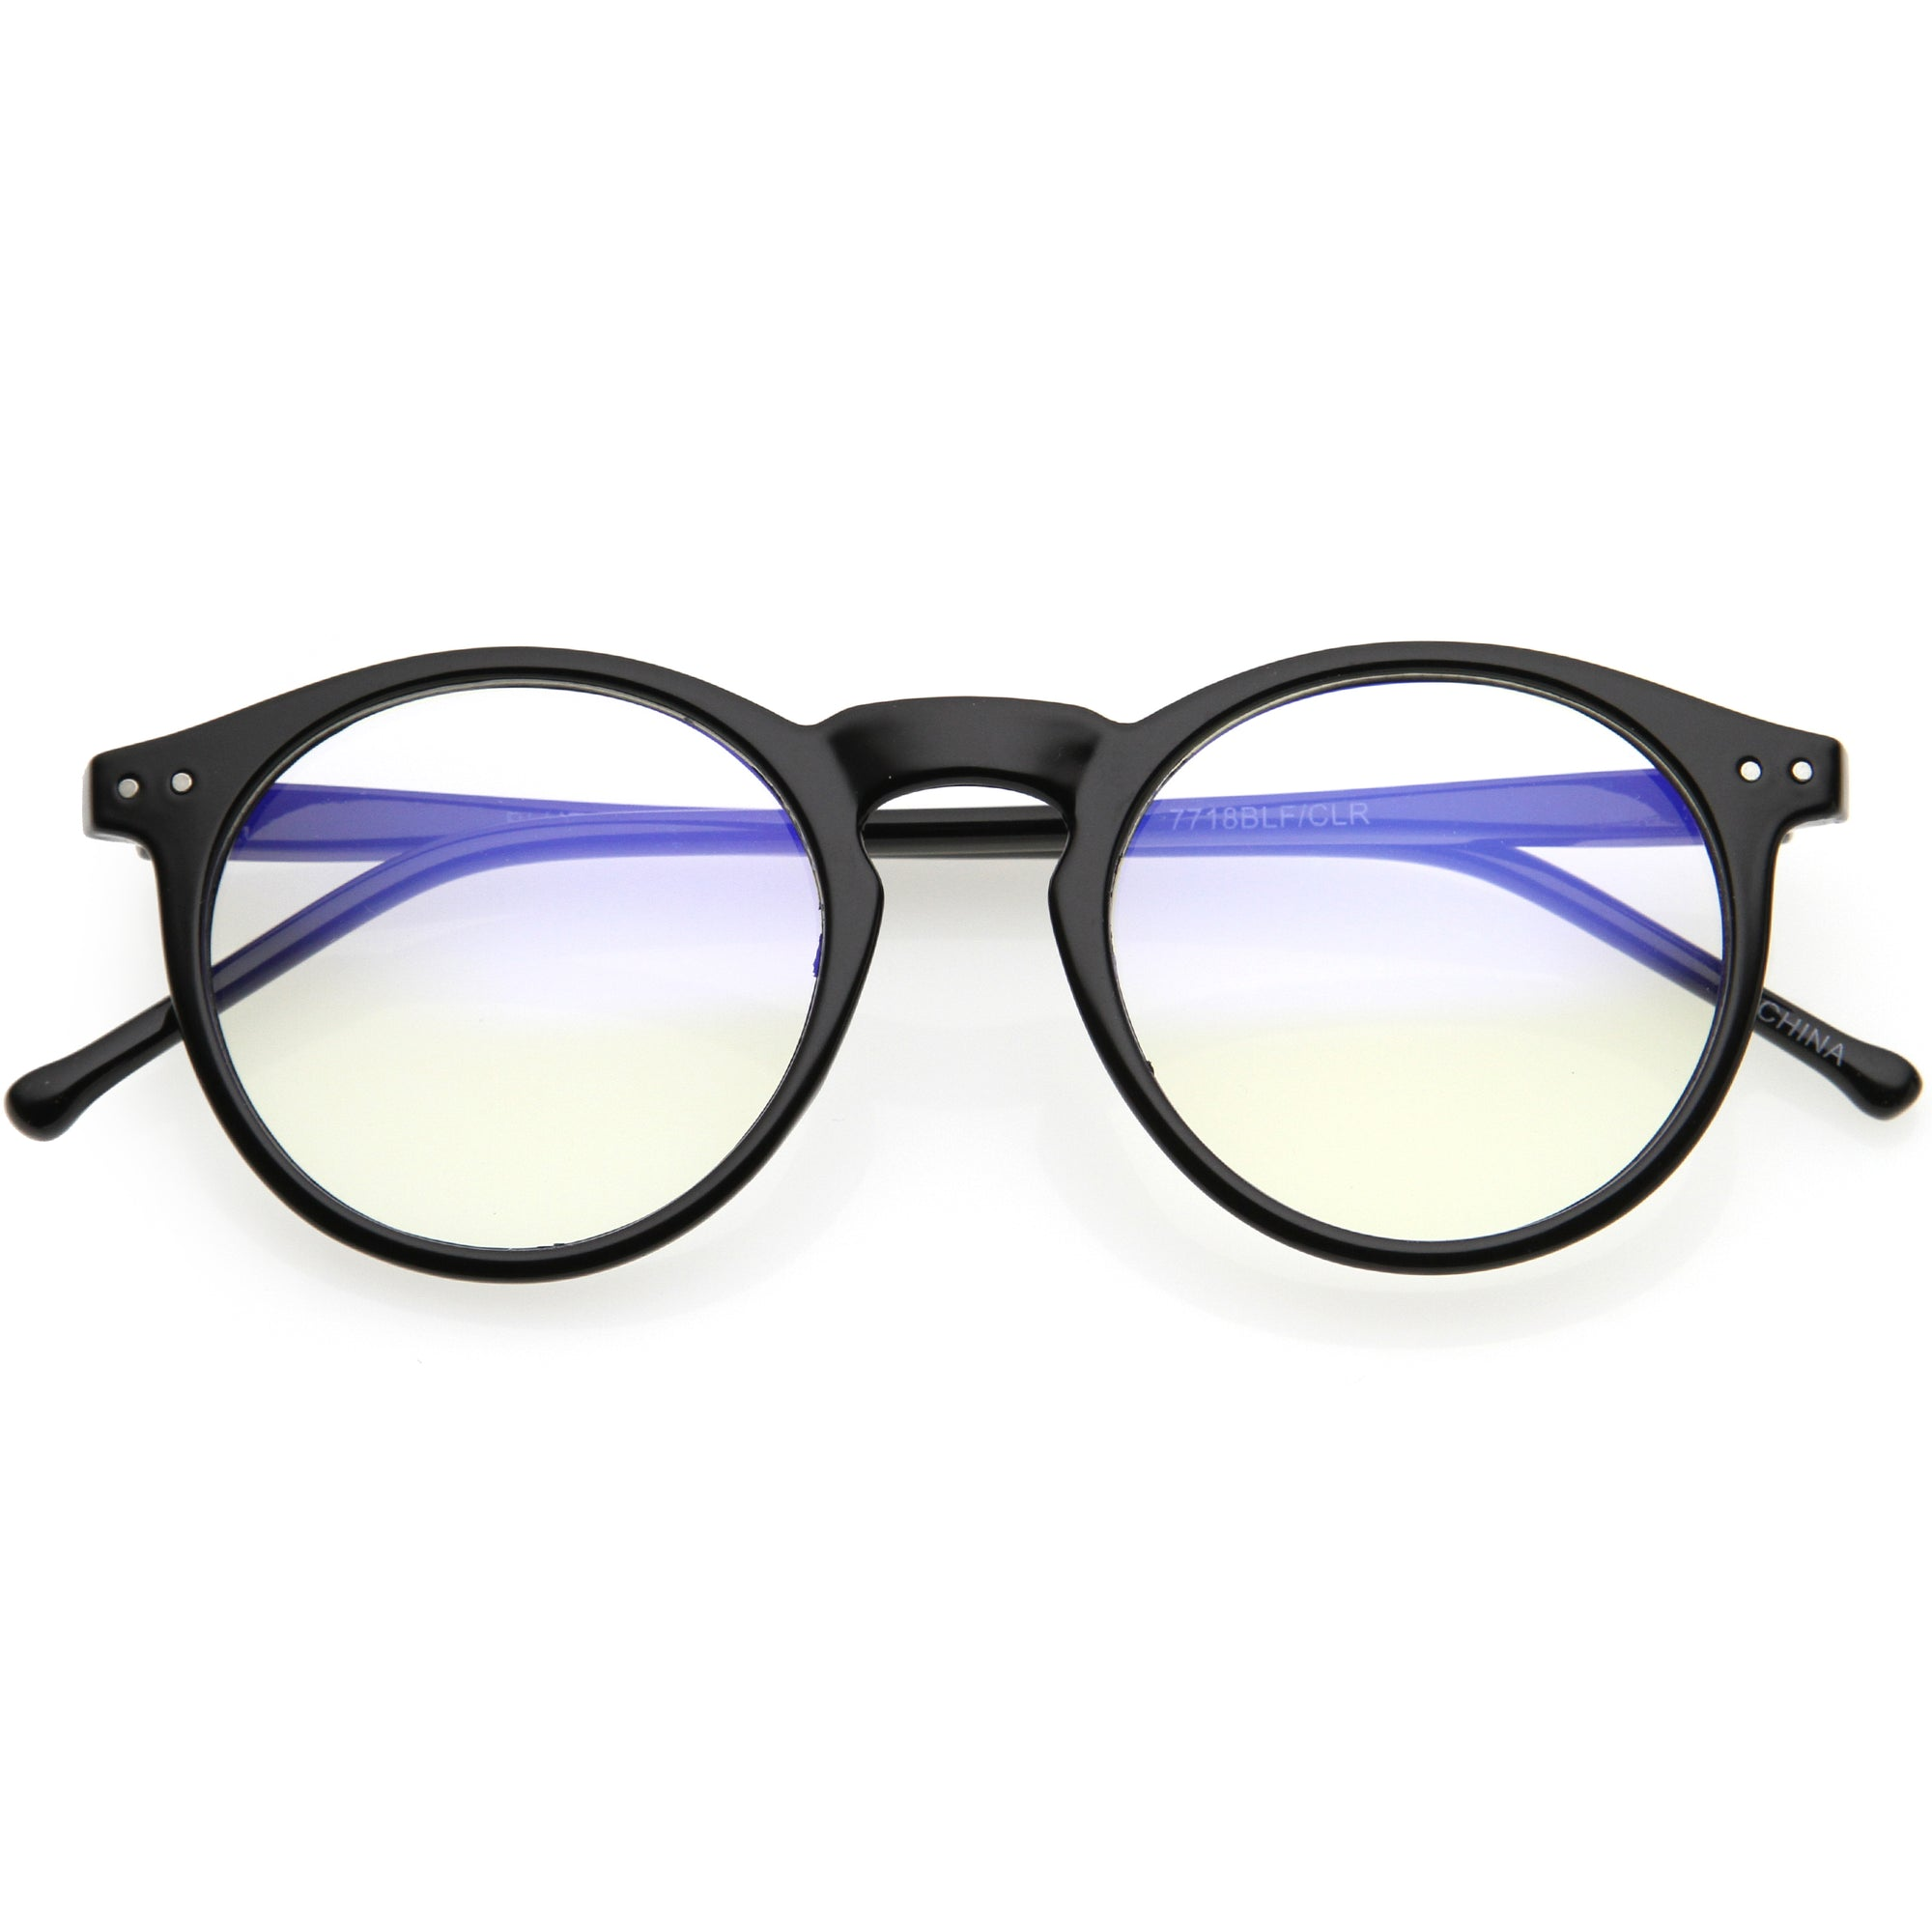 Retro P3 Shaped Clear Lens Blue Light Blocking Glasses D158